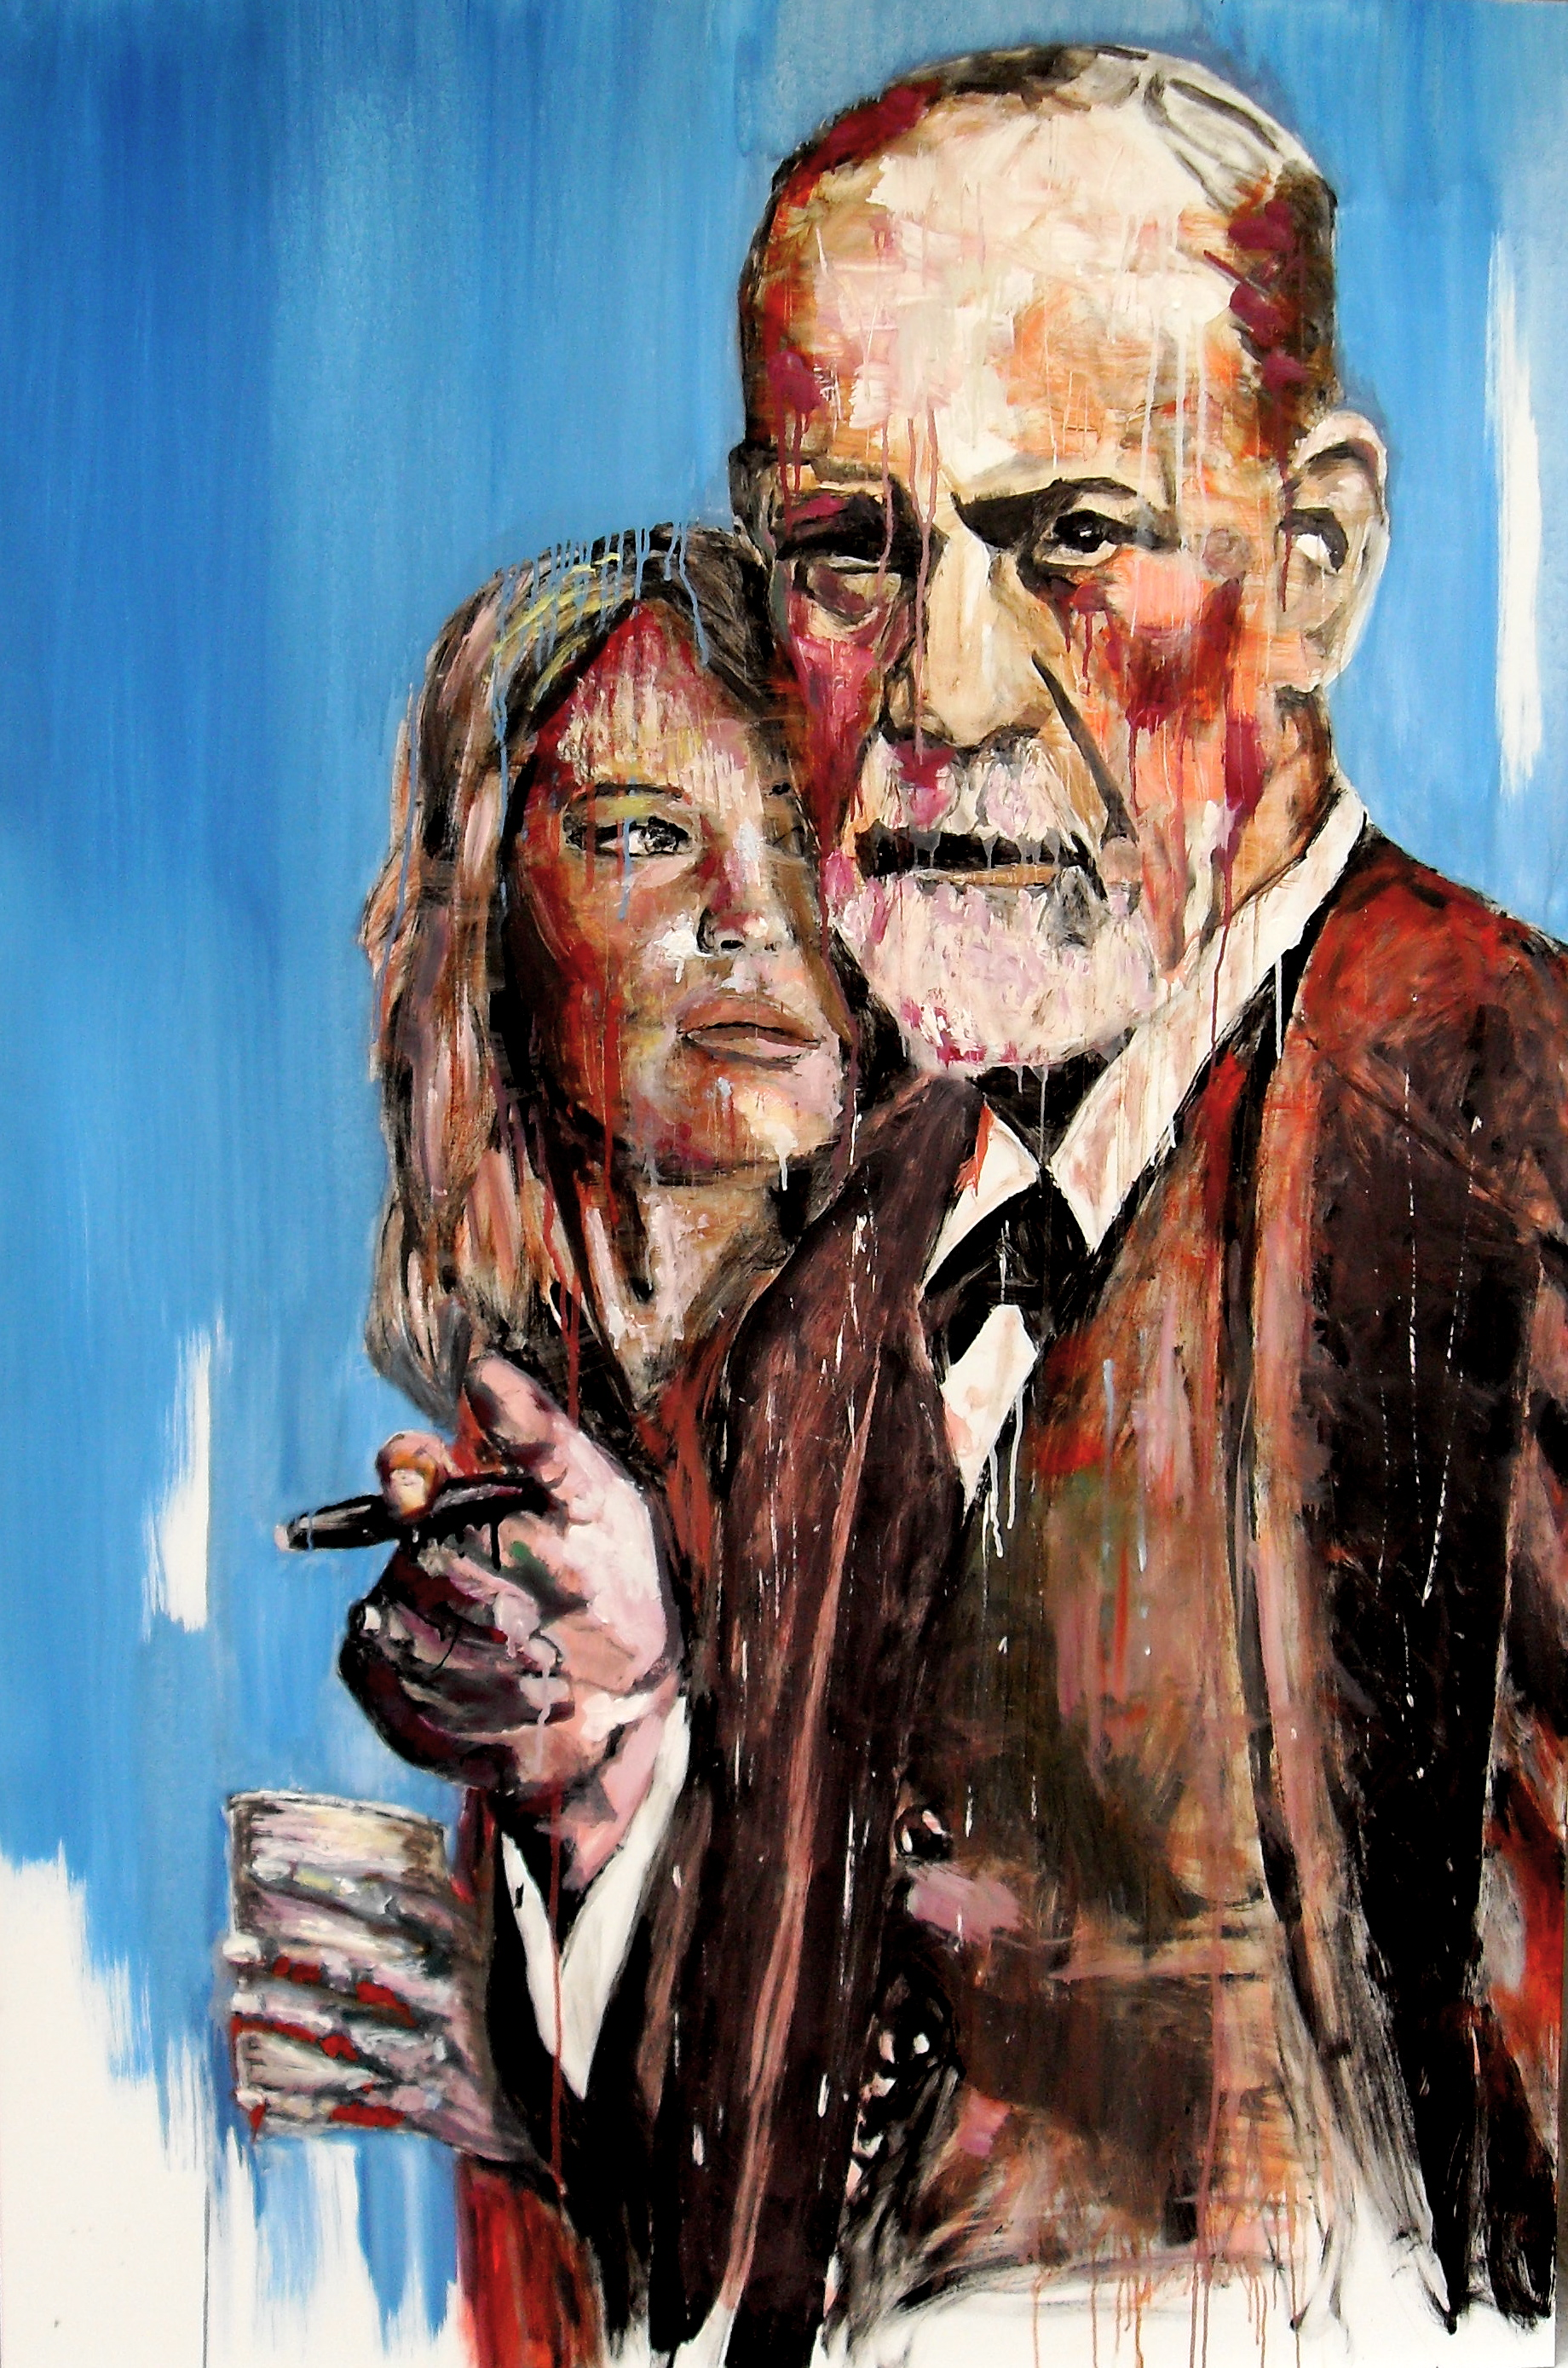 Freud & friend (Sigmund & Jennifer), par Stanmac. Huile sur panneau / Oil on board. 150 x 100 cm. 2015